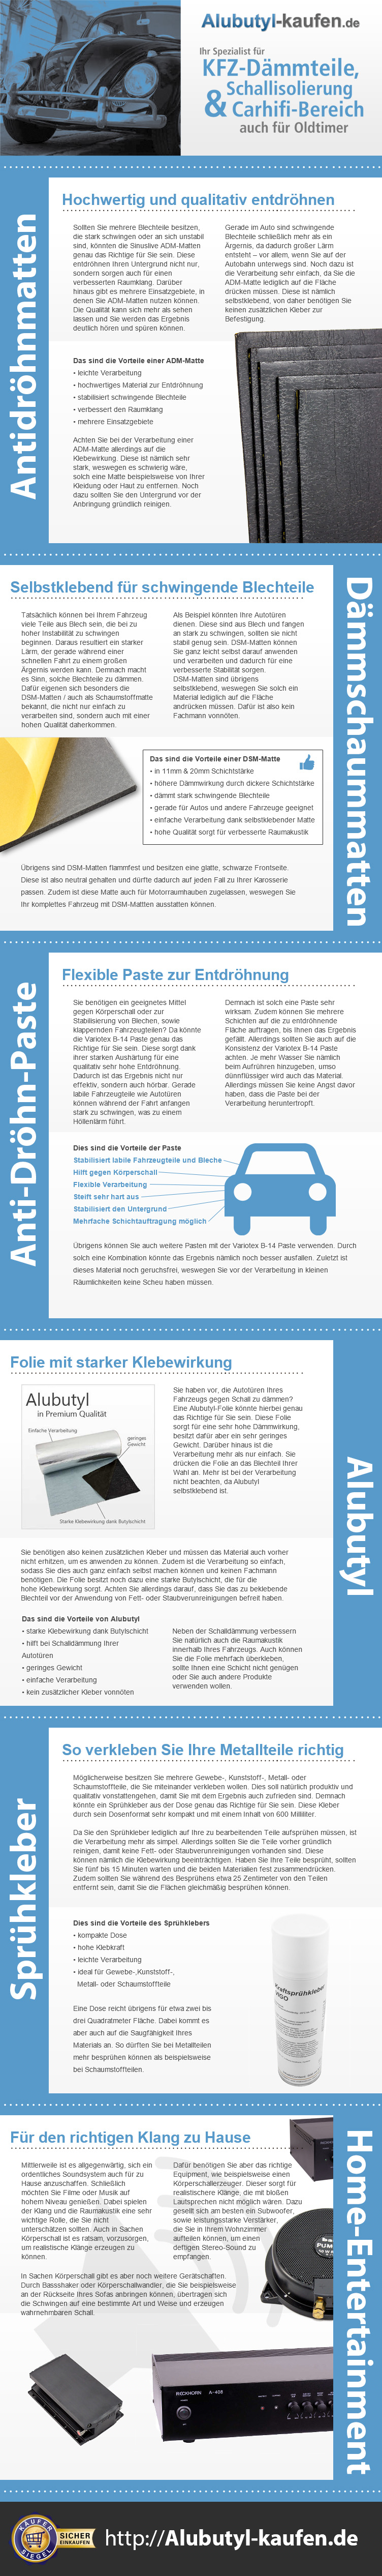 Infografik - Produktsortiment